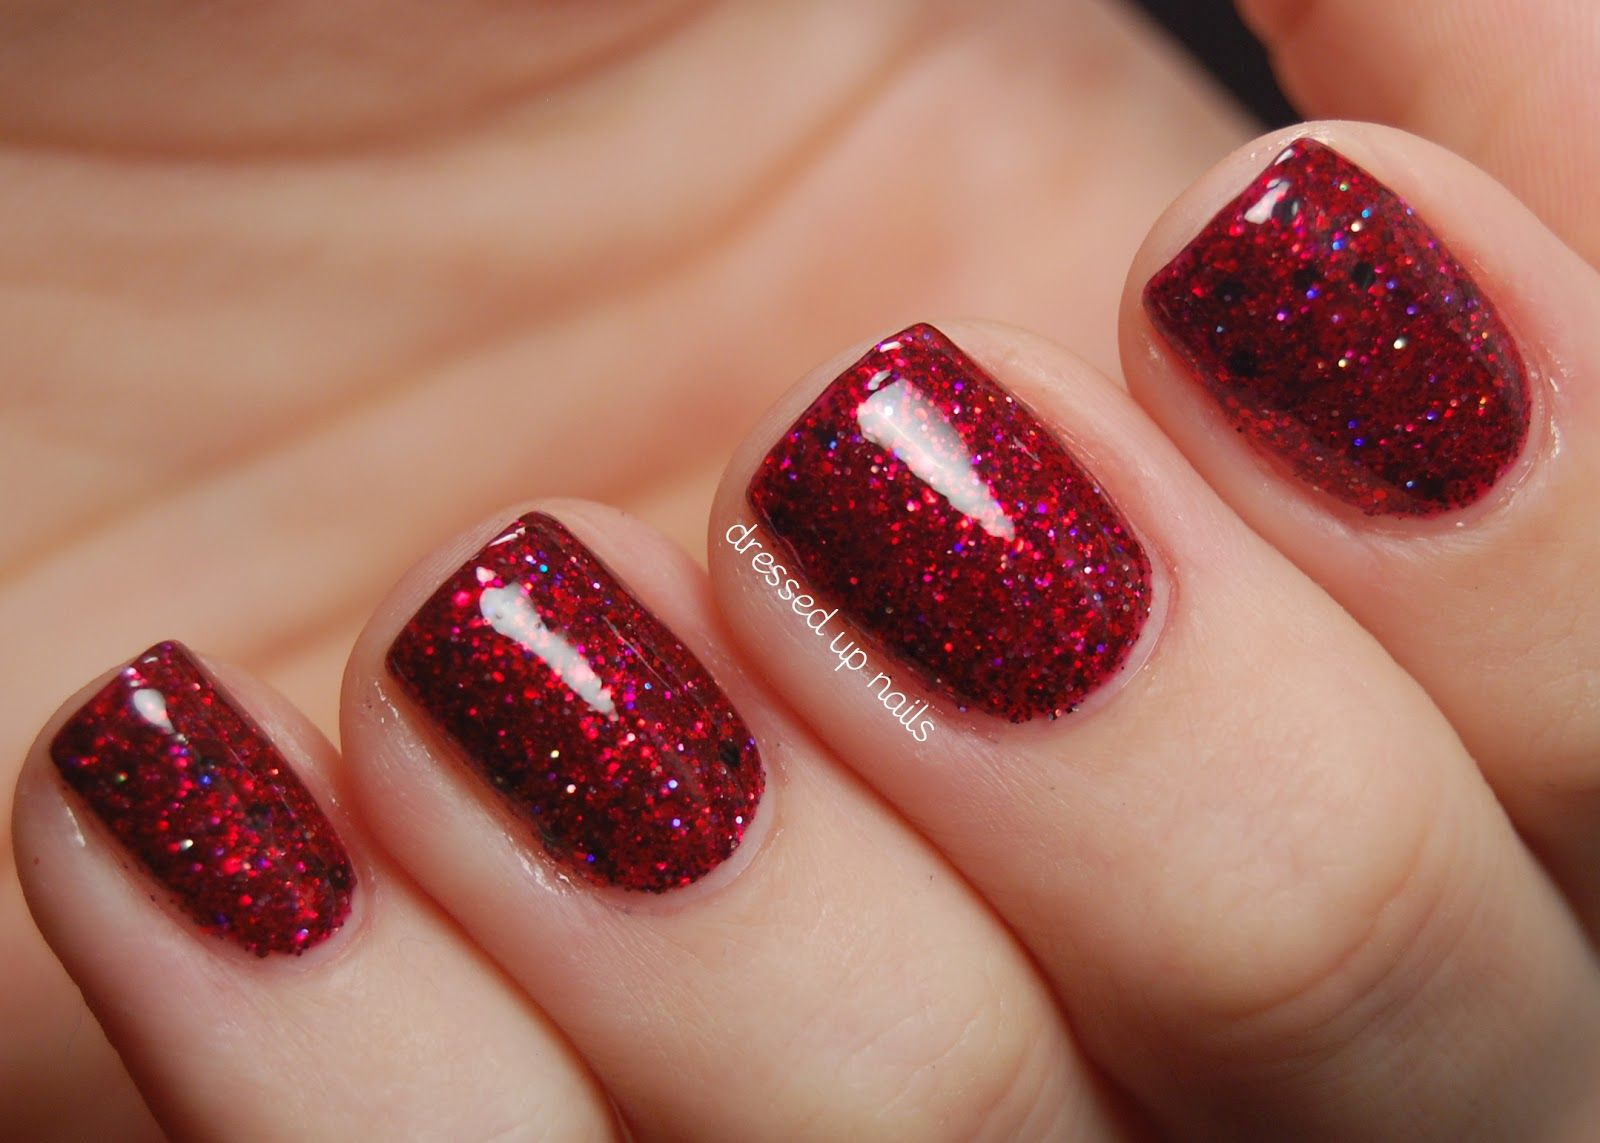 red cute glitter nail designs - http://69hdwallpapers.com/red-cute ...